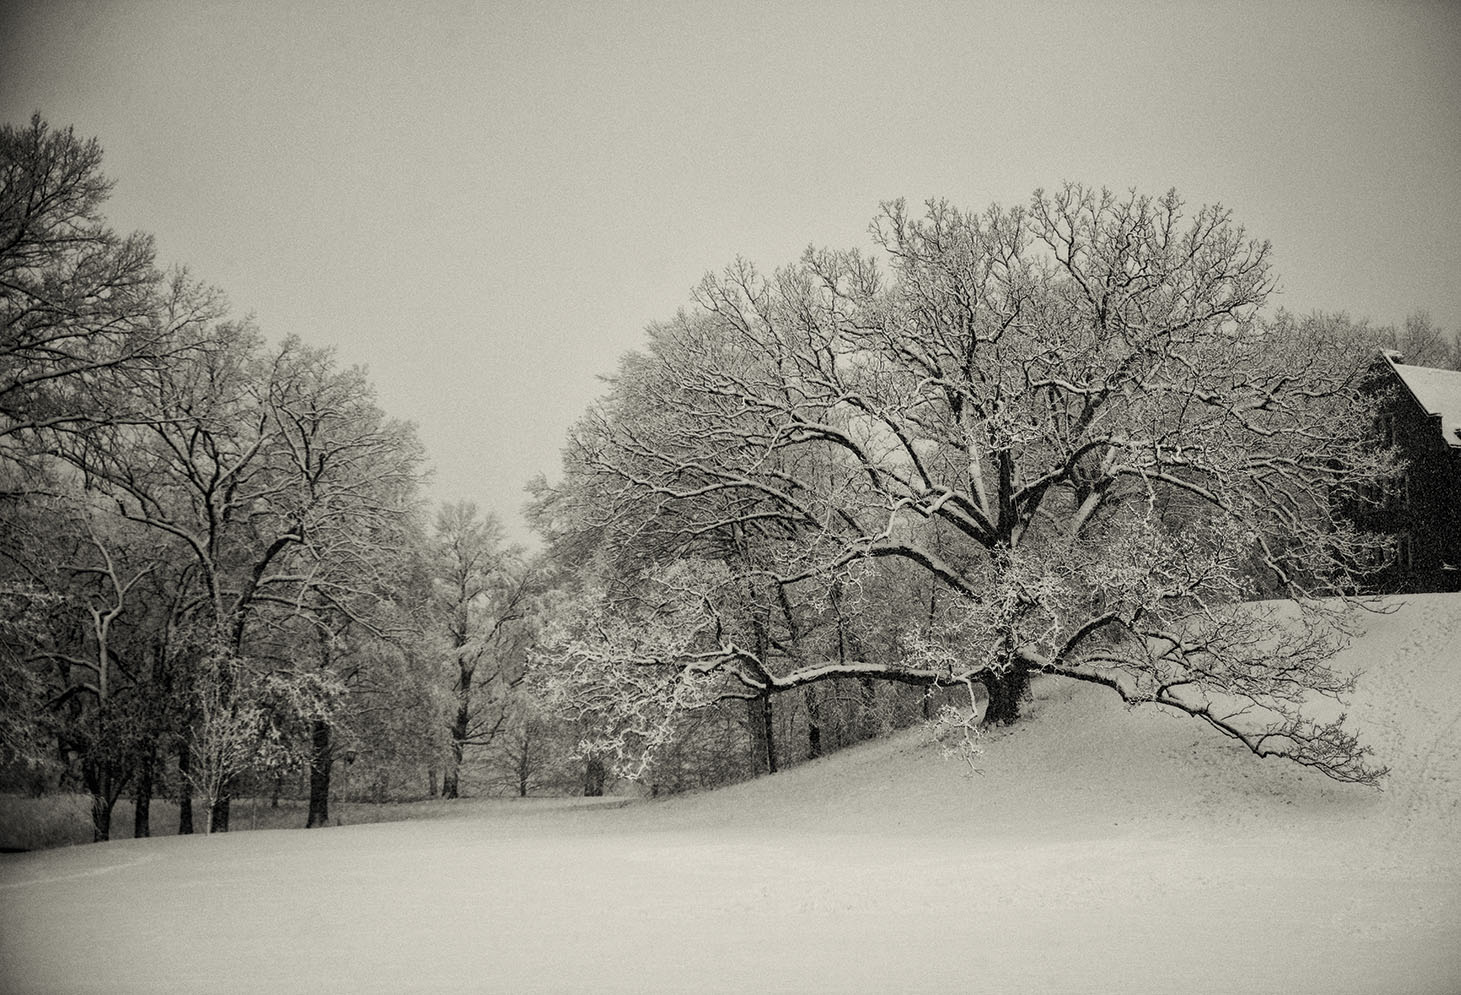 2016: Severance Green, after a heavy snowstorm